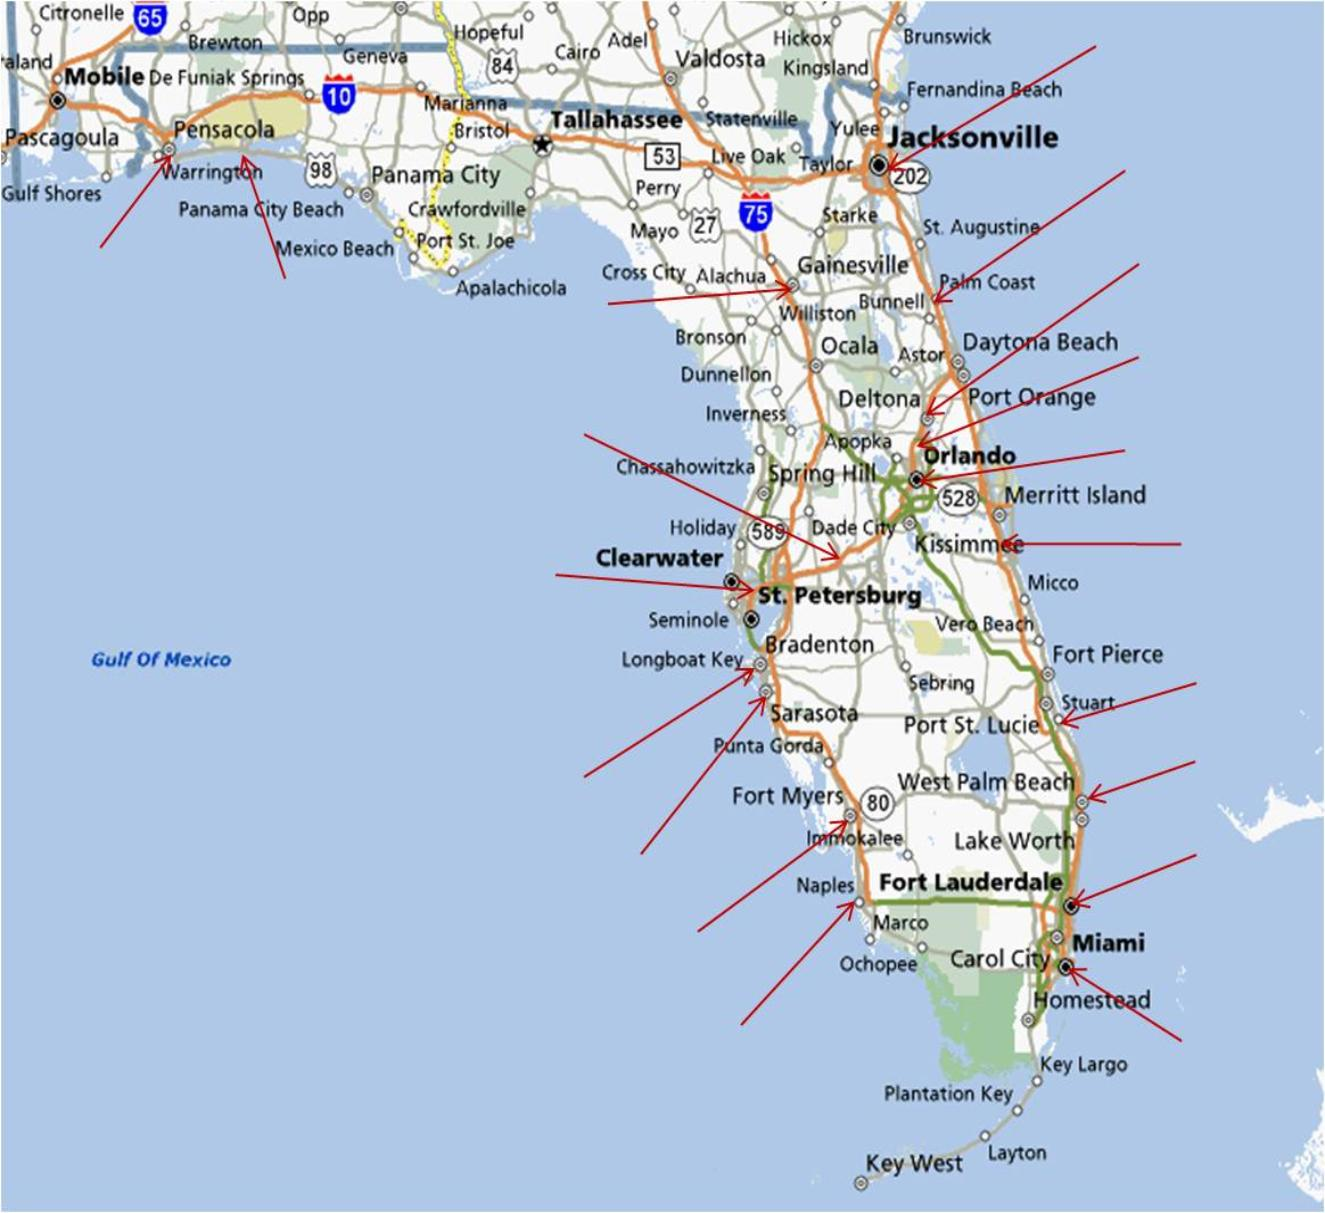 Map Of East Coast Of Florida World Map - Florida map ft pierce